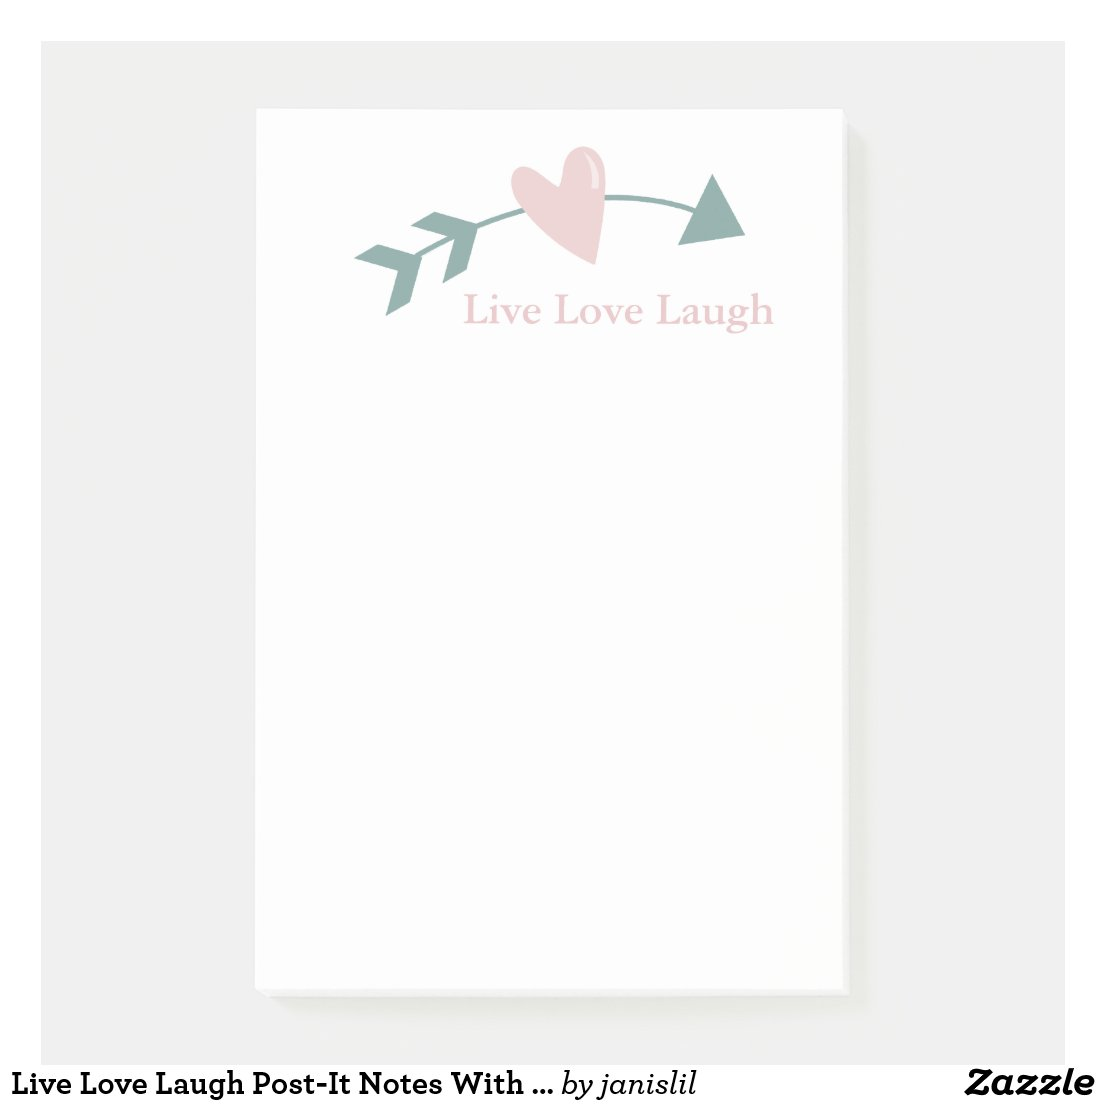 Live Love Laugh Post-It Notes With Heart And Arrow